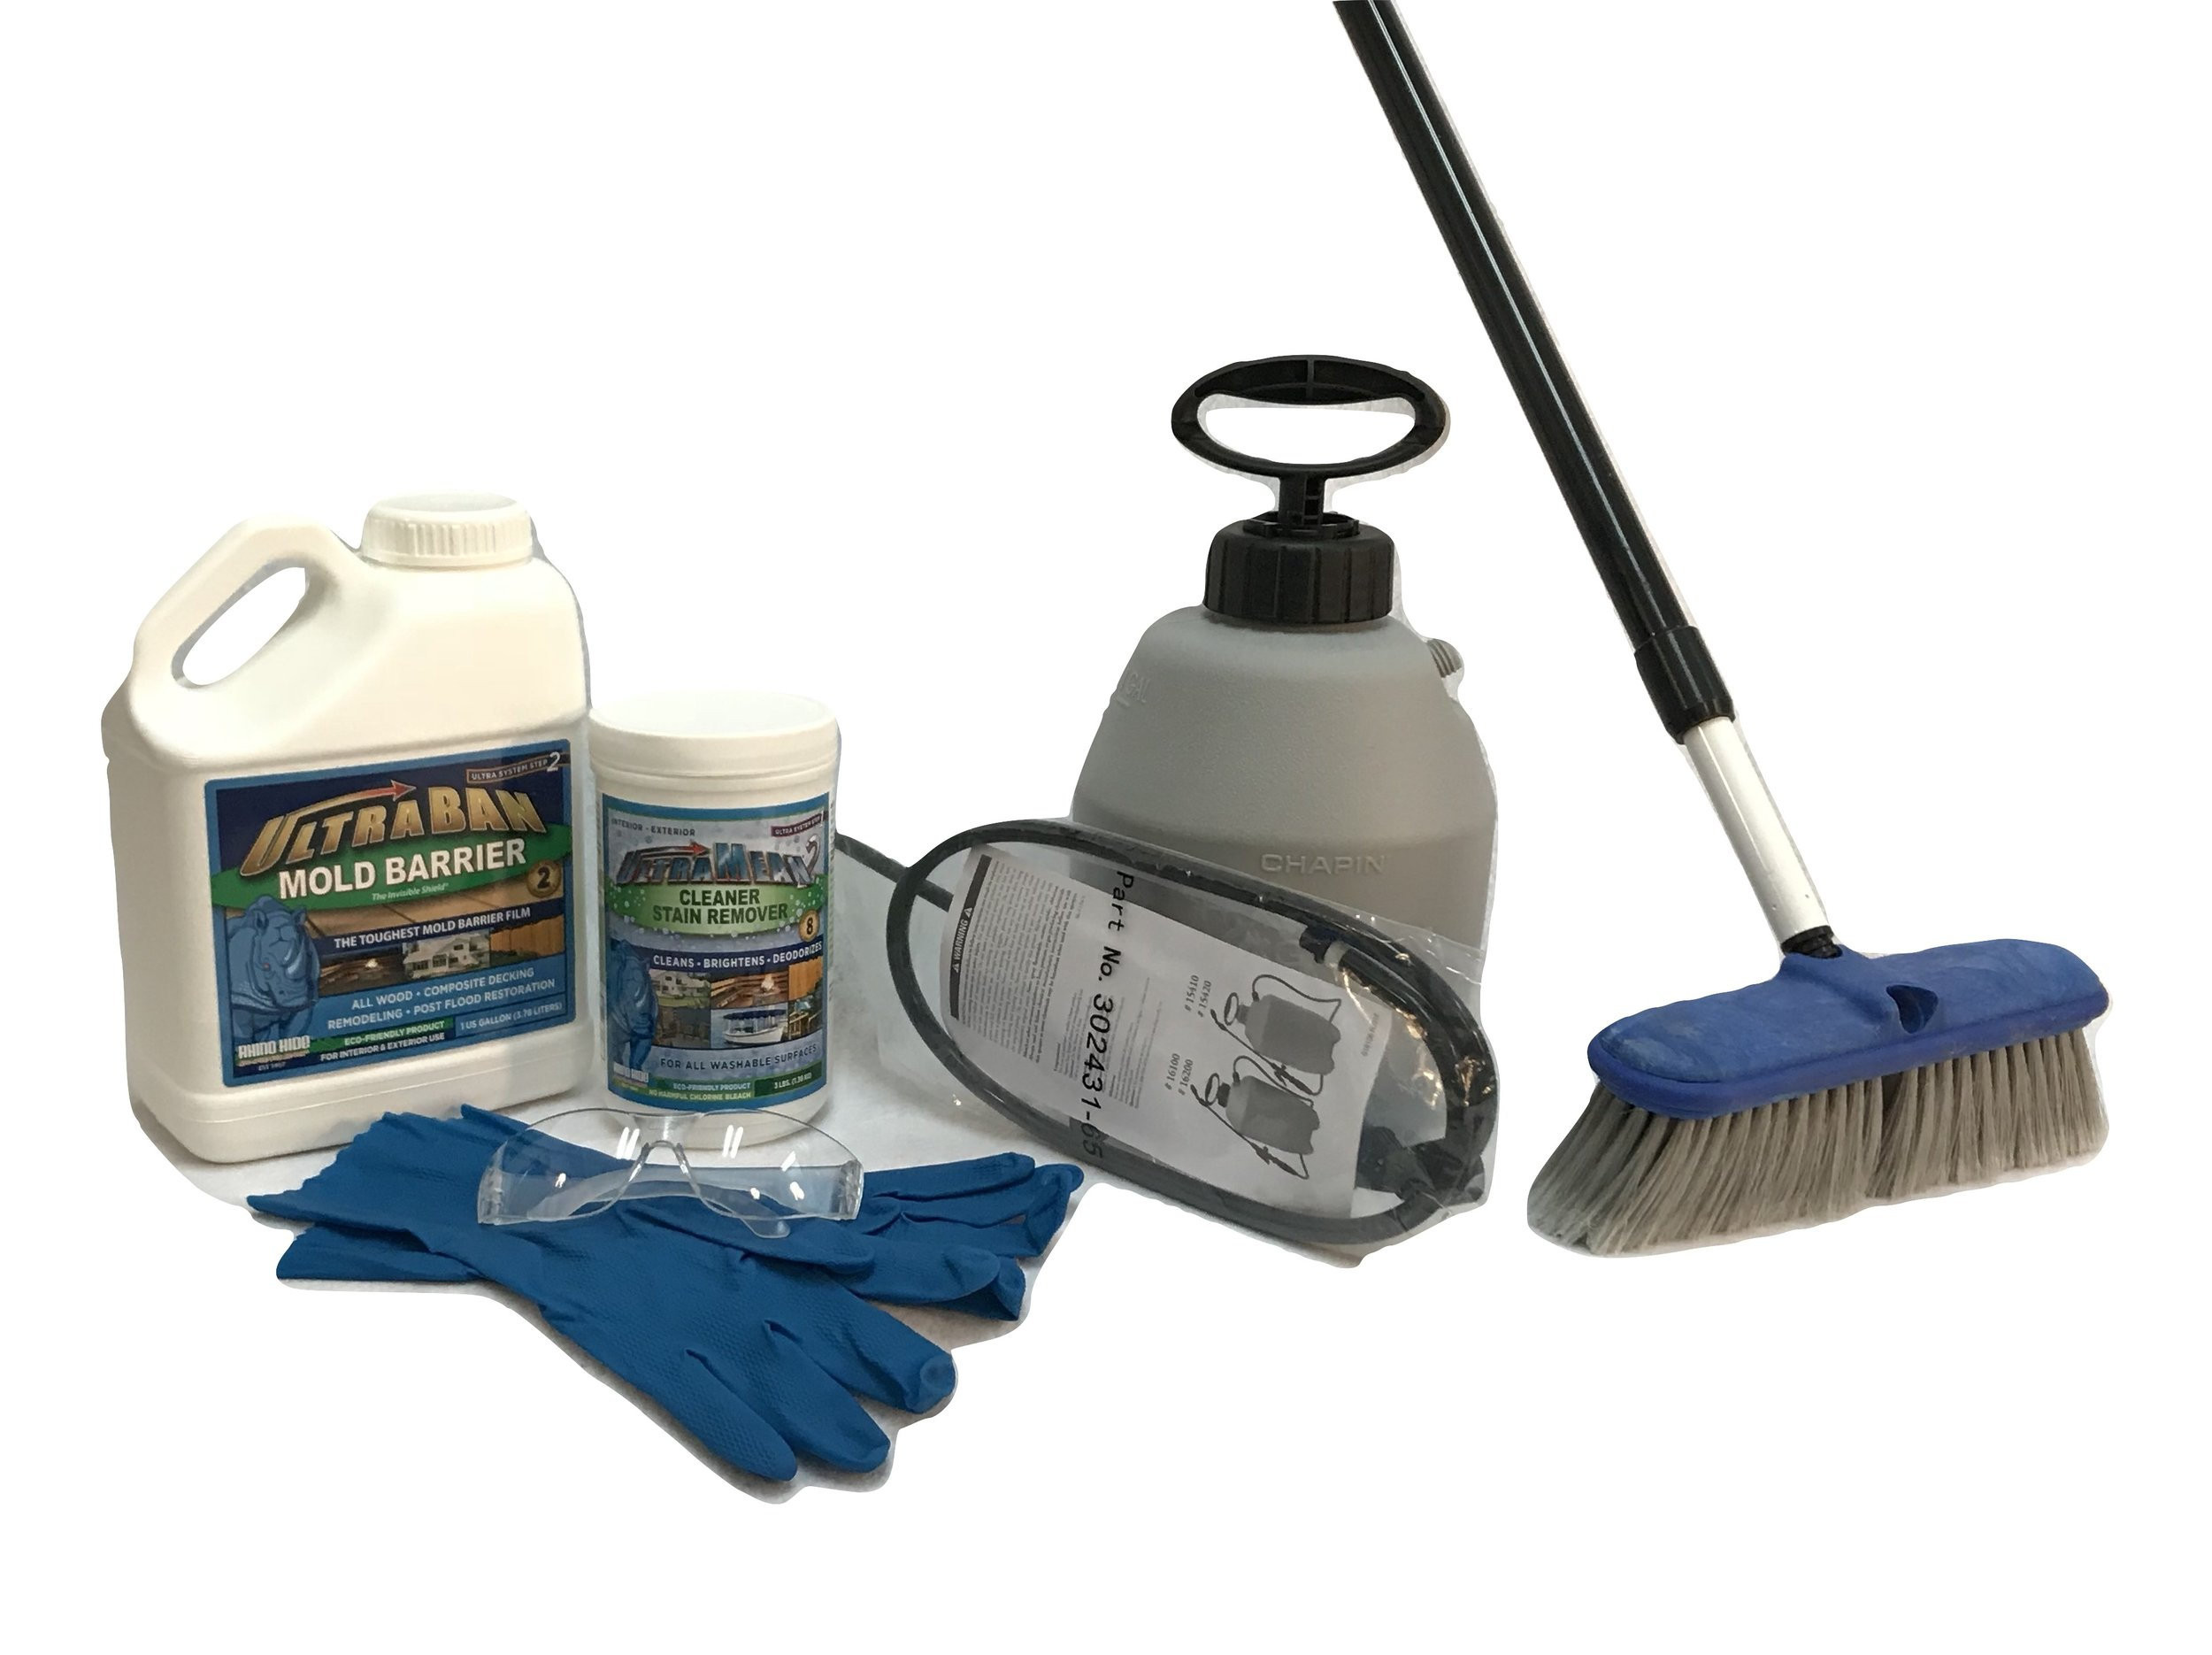 Composite Deck Maintenance Kit - Want to skip the store? We gathered up all the cleaning essentials to get you started with our ready-to-go kit.